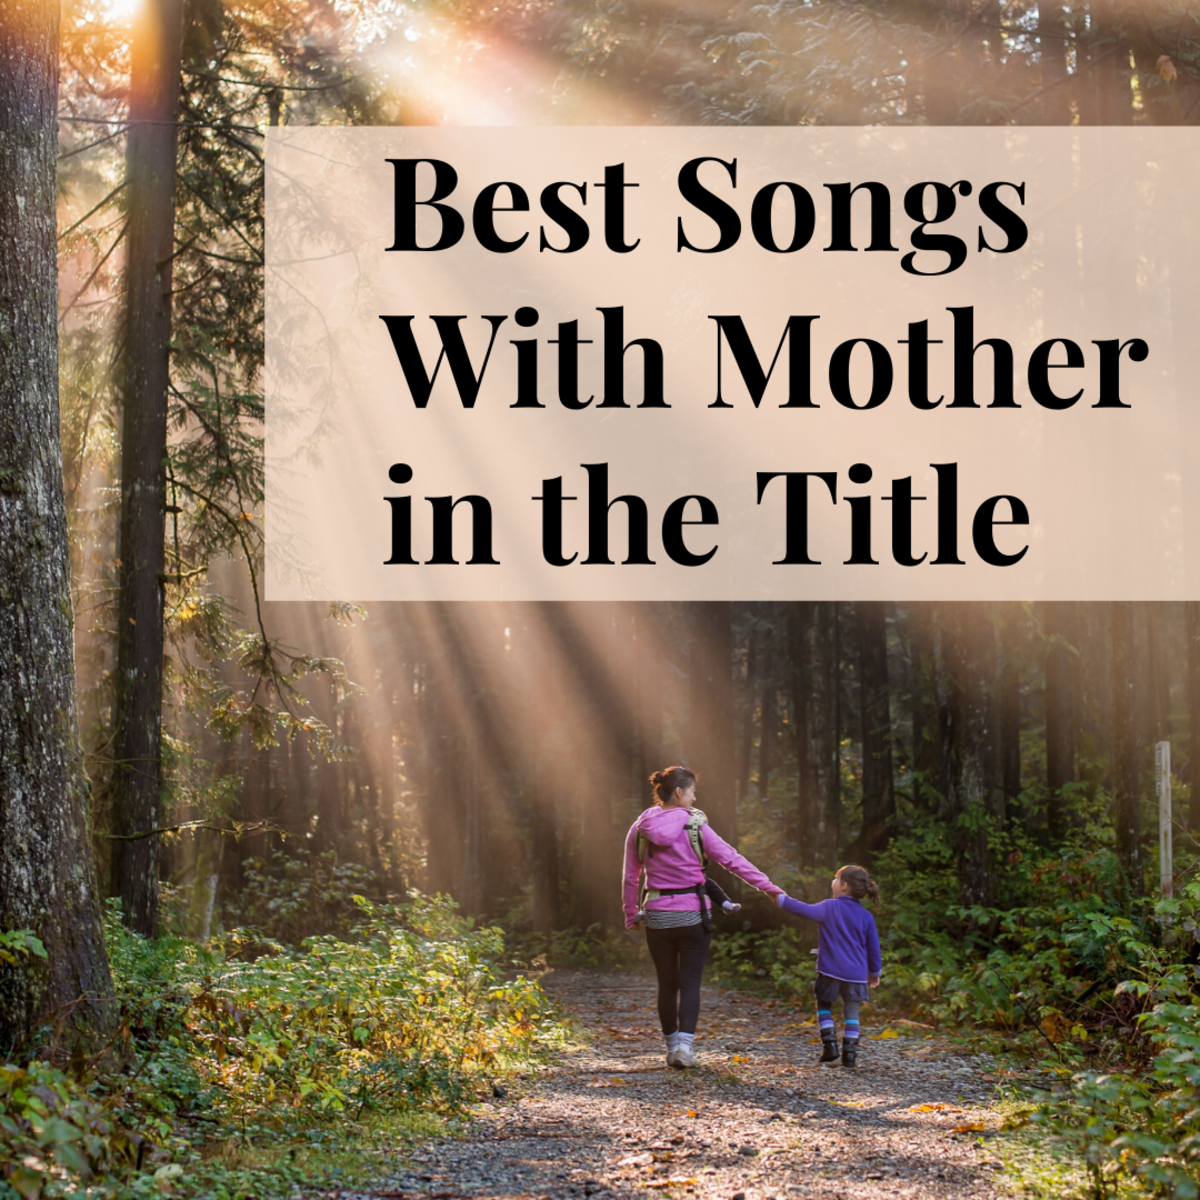 There are literally thousands of songs about mothers and motherhood out there. Read on to see which are the best.